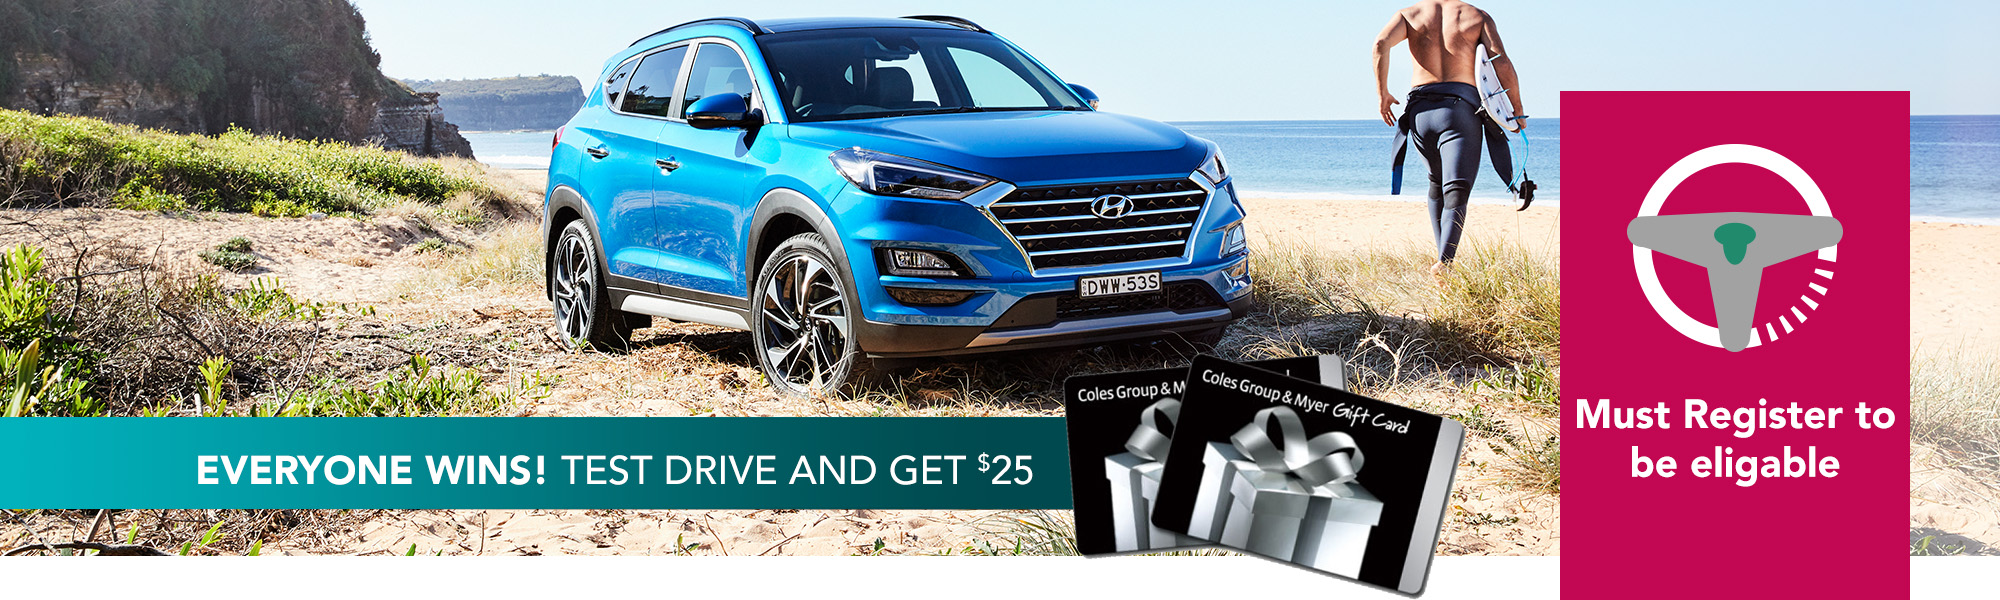 $25 Test Drive and win!